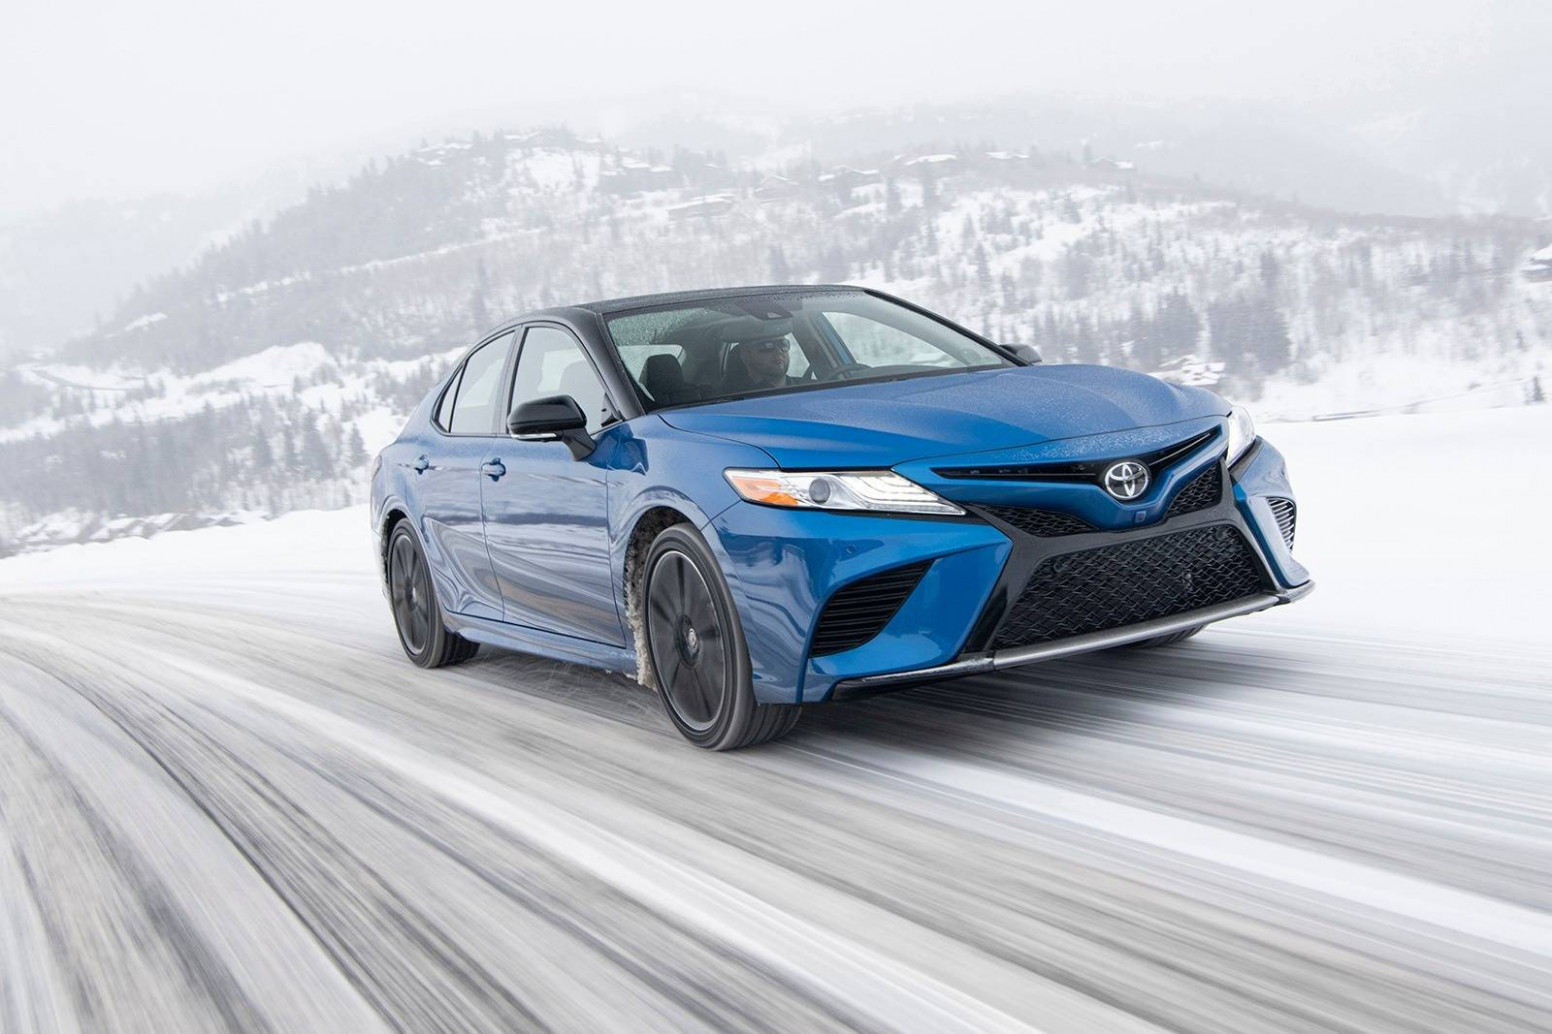 11 Toyota Camry Prices, Reviews, and Pictures | Edmunds - 2020 toyota xle price